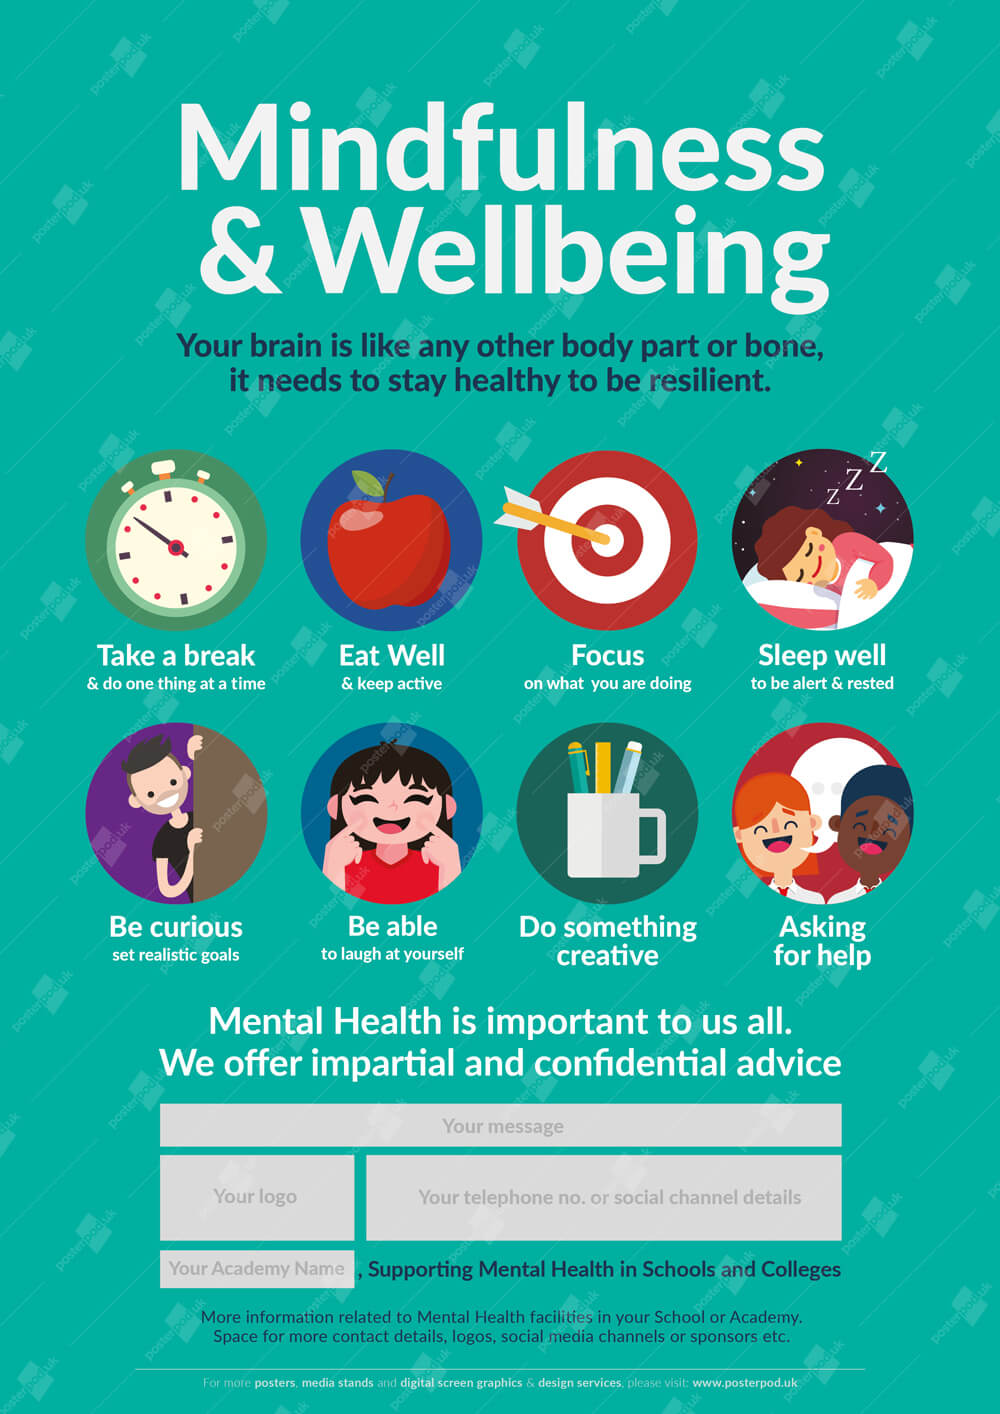 Maintain Mental Focus Now: Mindfulness & Wellbeing Poster